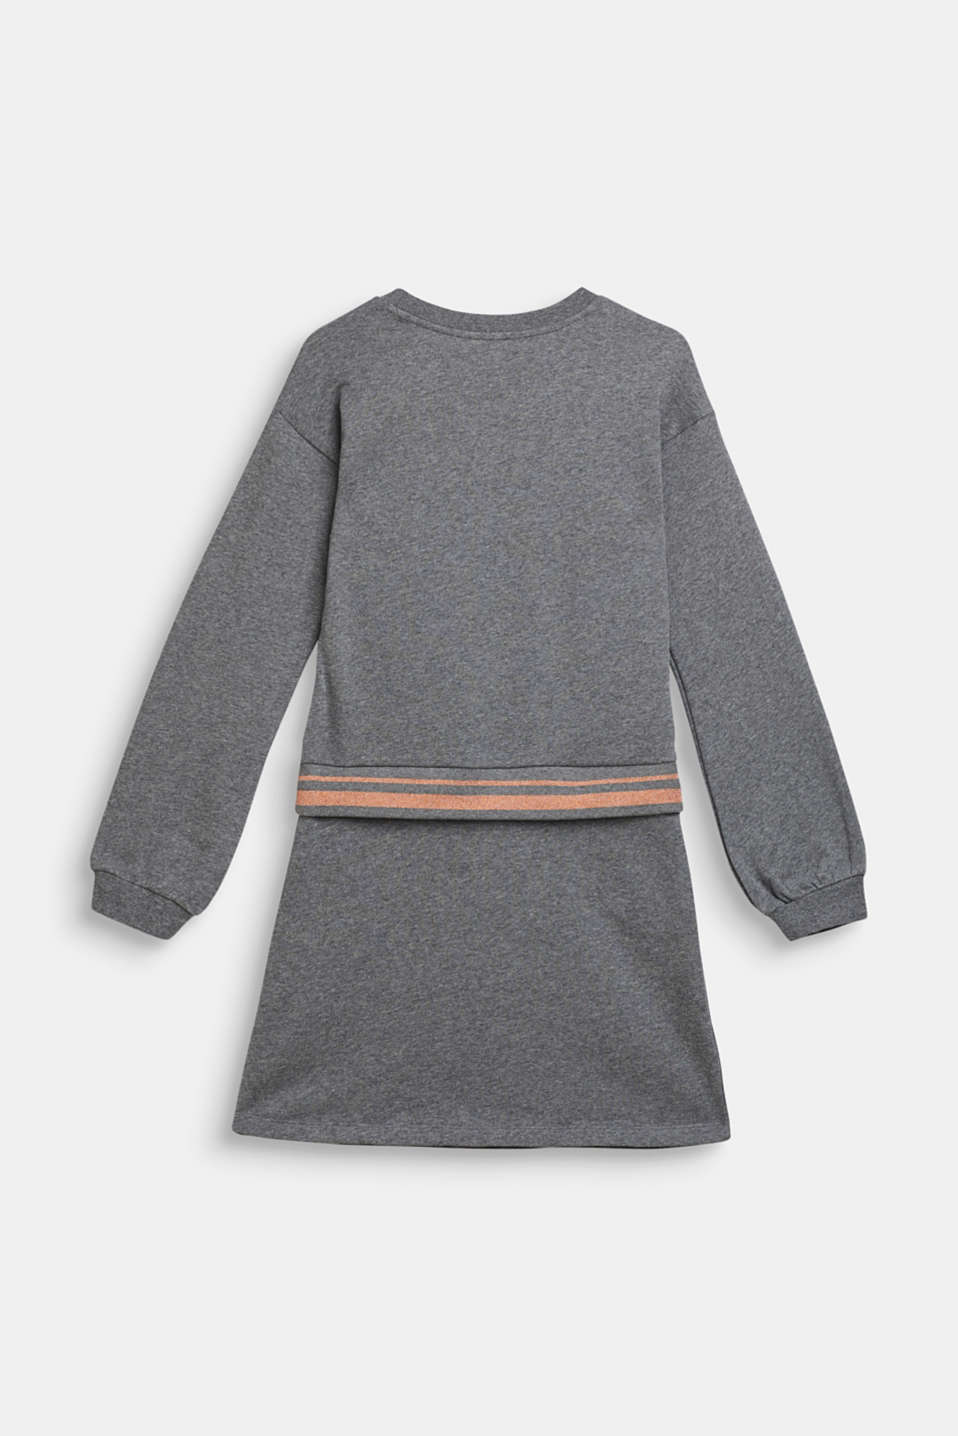 Sweatshirt fabric dress with sparkly borders, 100% cotton, LCDARK HEATHER G, detail image number 1